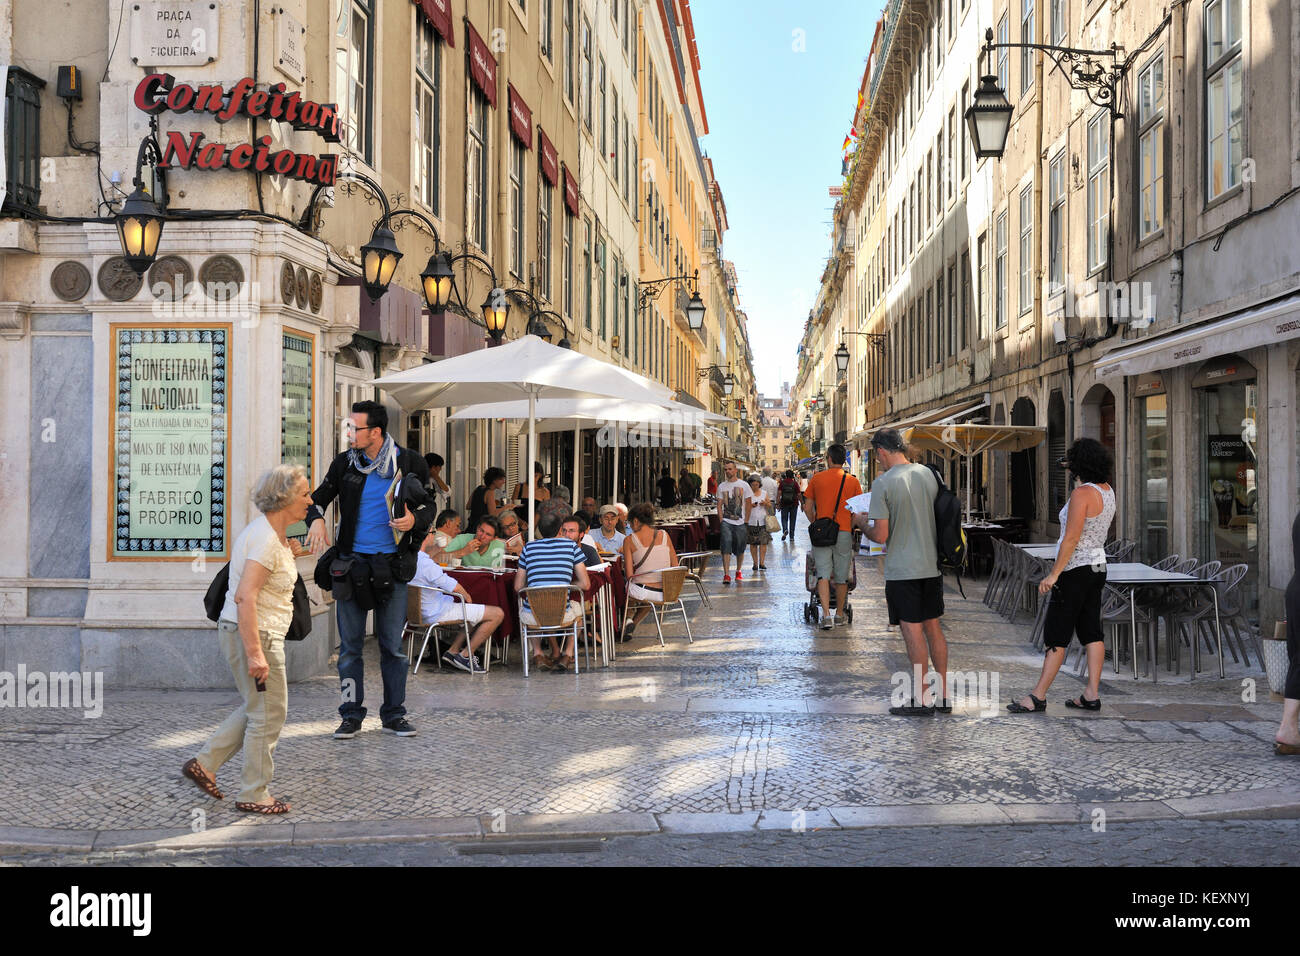 Rua dos Correeiros in the historical centre of Lisbon, Portugal Stock Photo